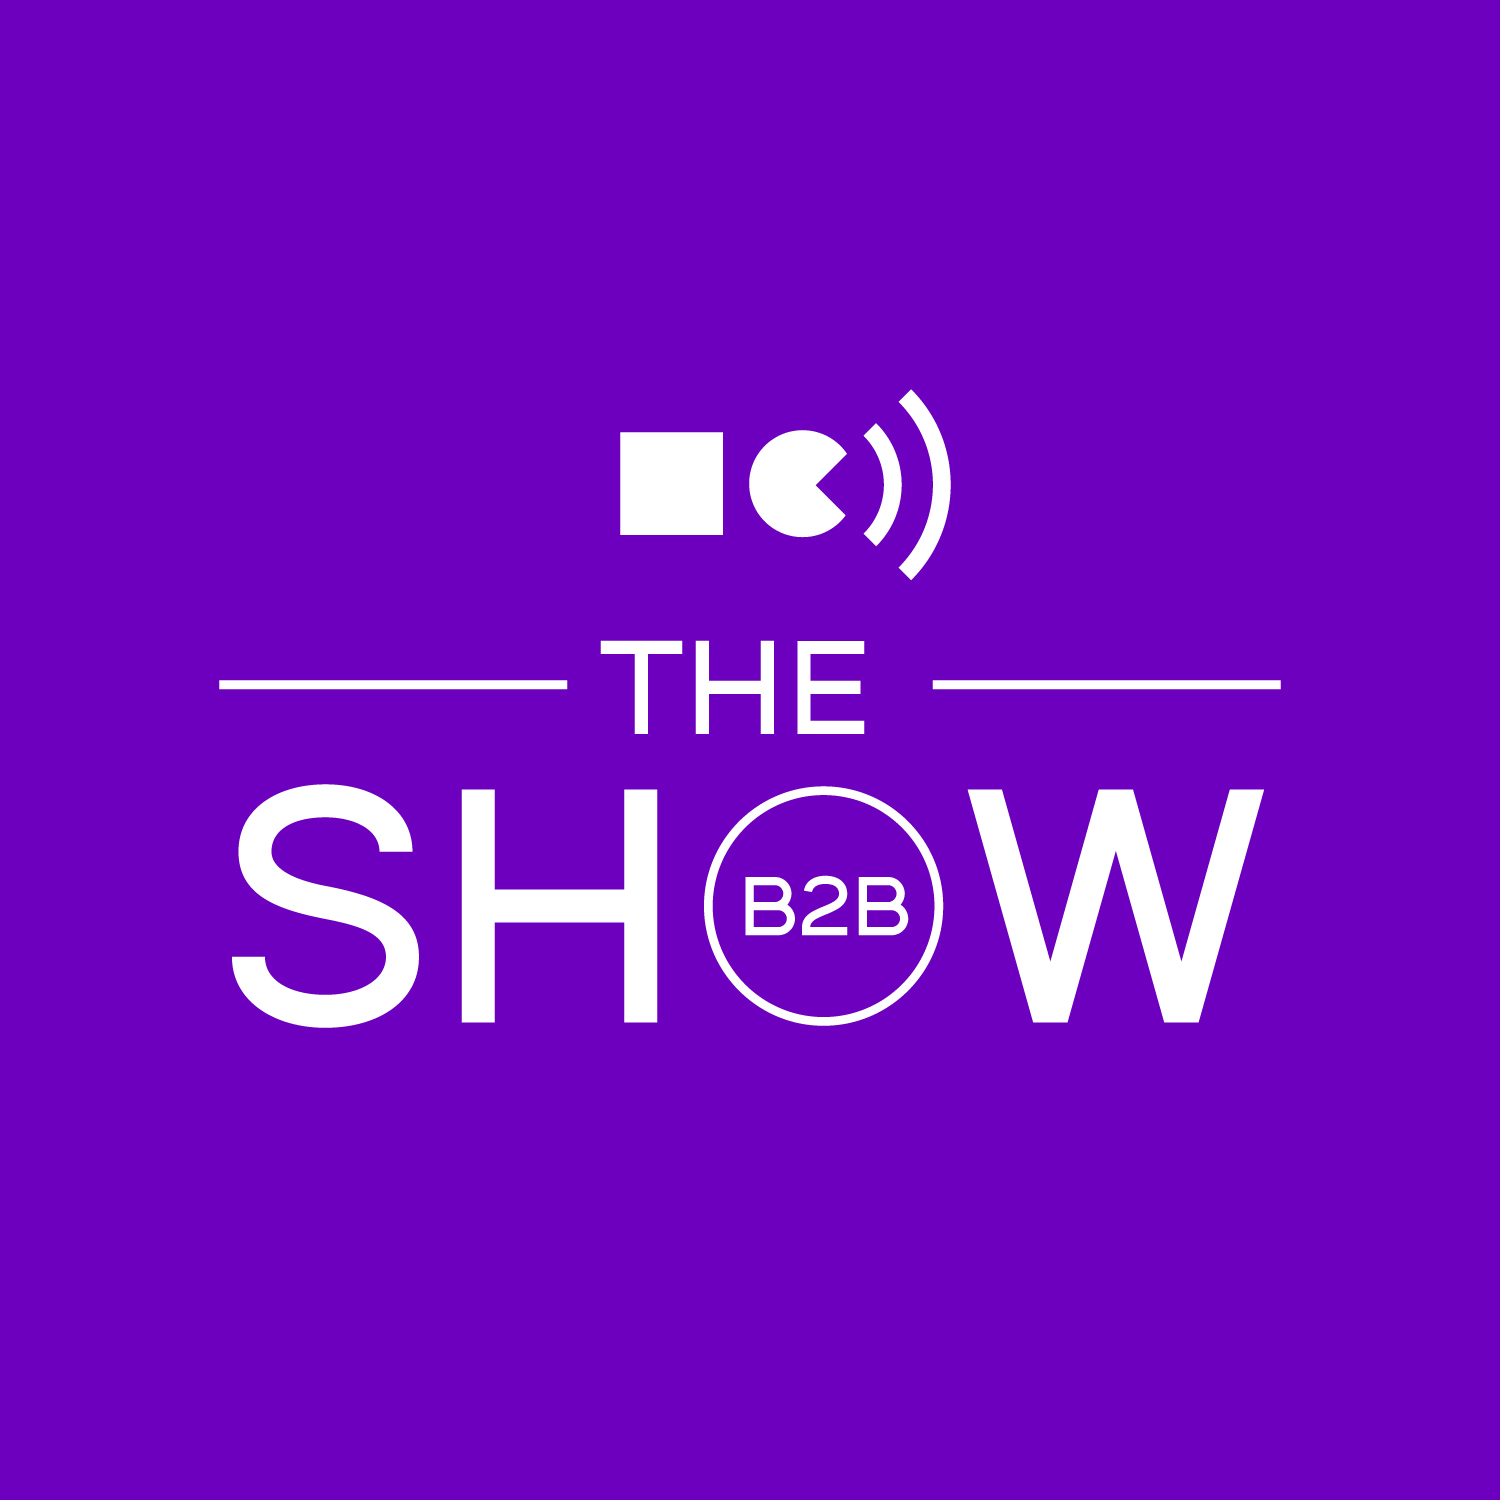 The B2B Show